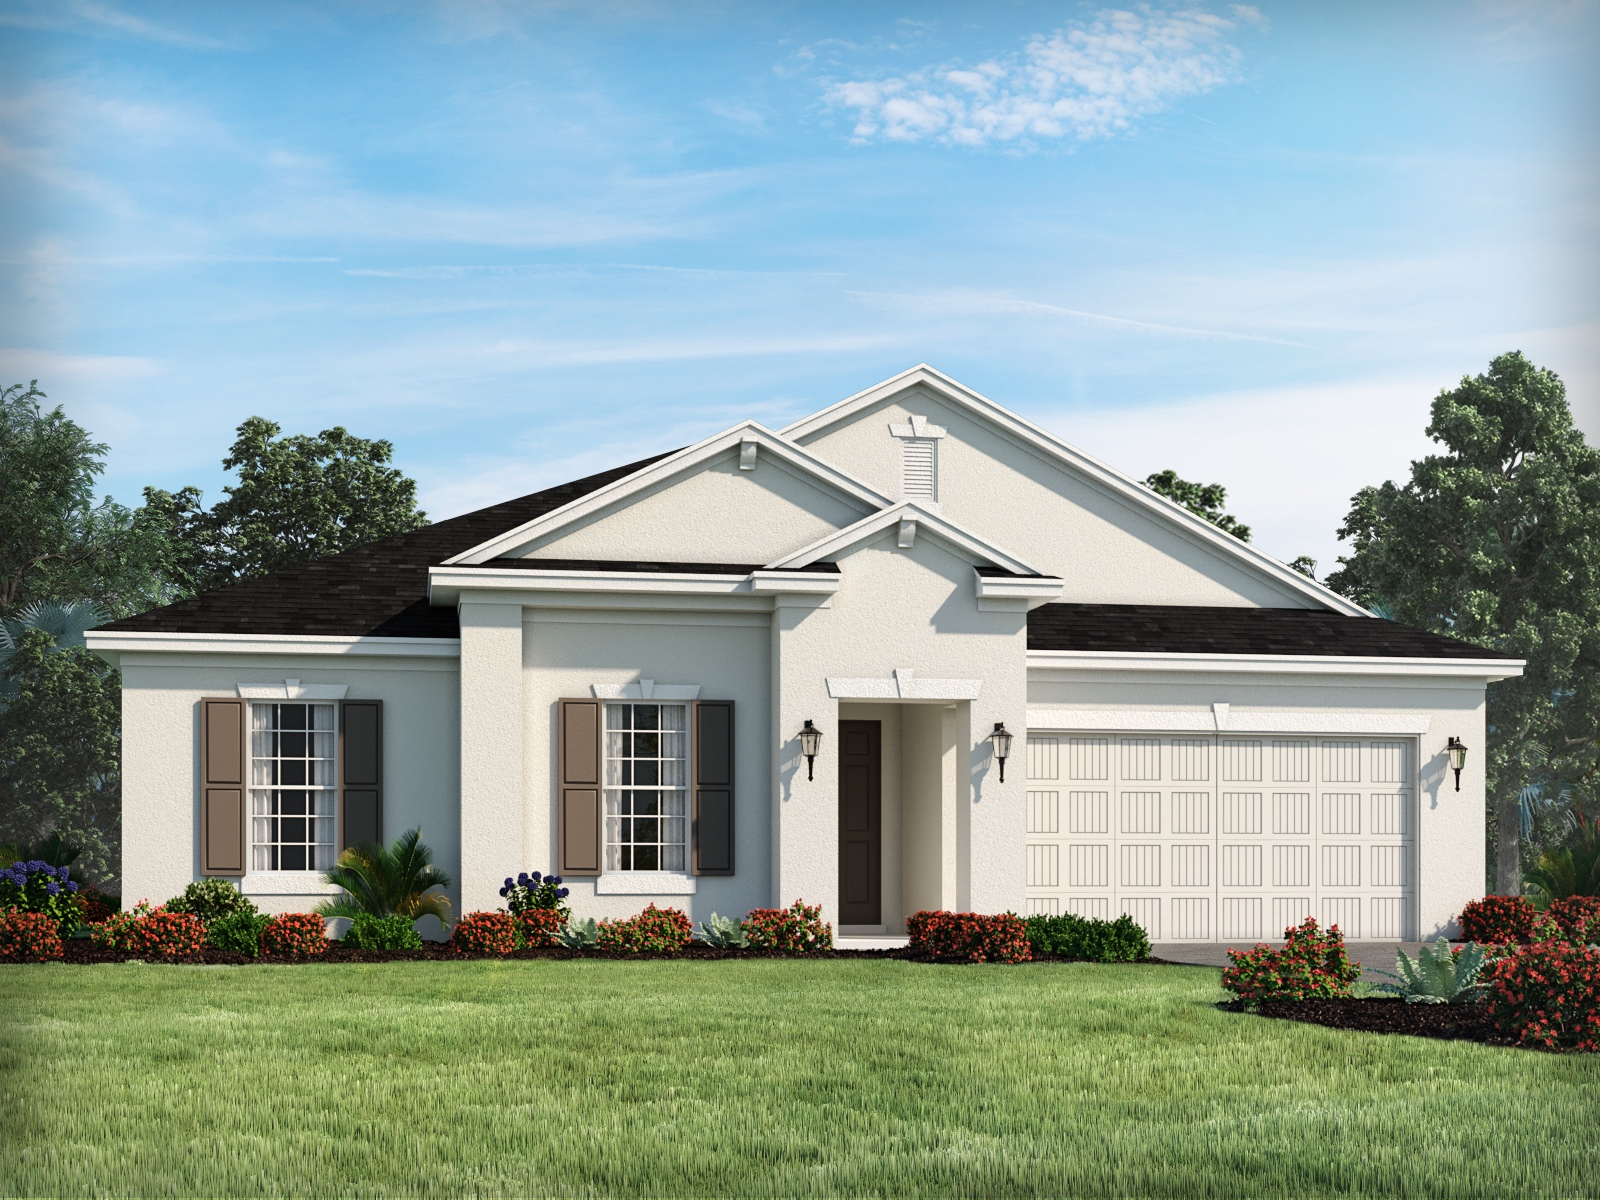 4443 OLYMPIC CLUBWAY on taylor morrison home plans, lennar home plans, white home plans, toll brothers home plans, beazer home plans, centex home plans, mercedes home plans, dr horton home plans,